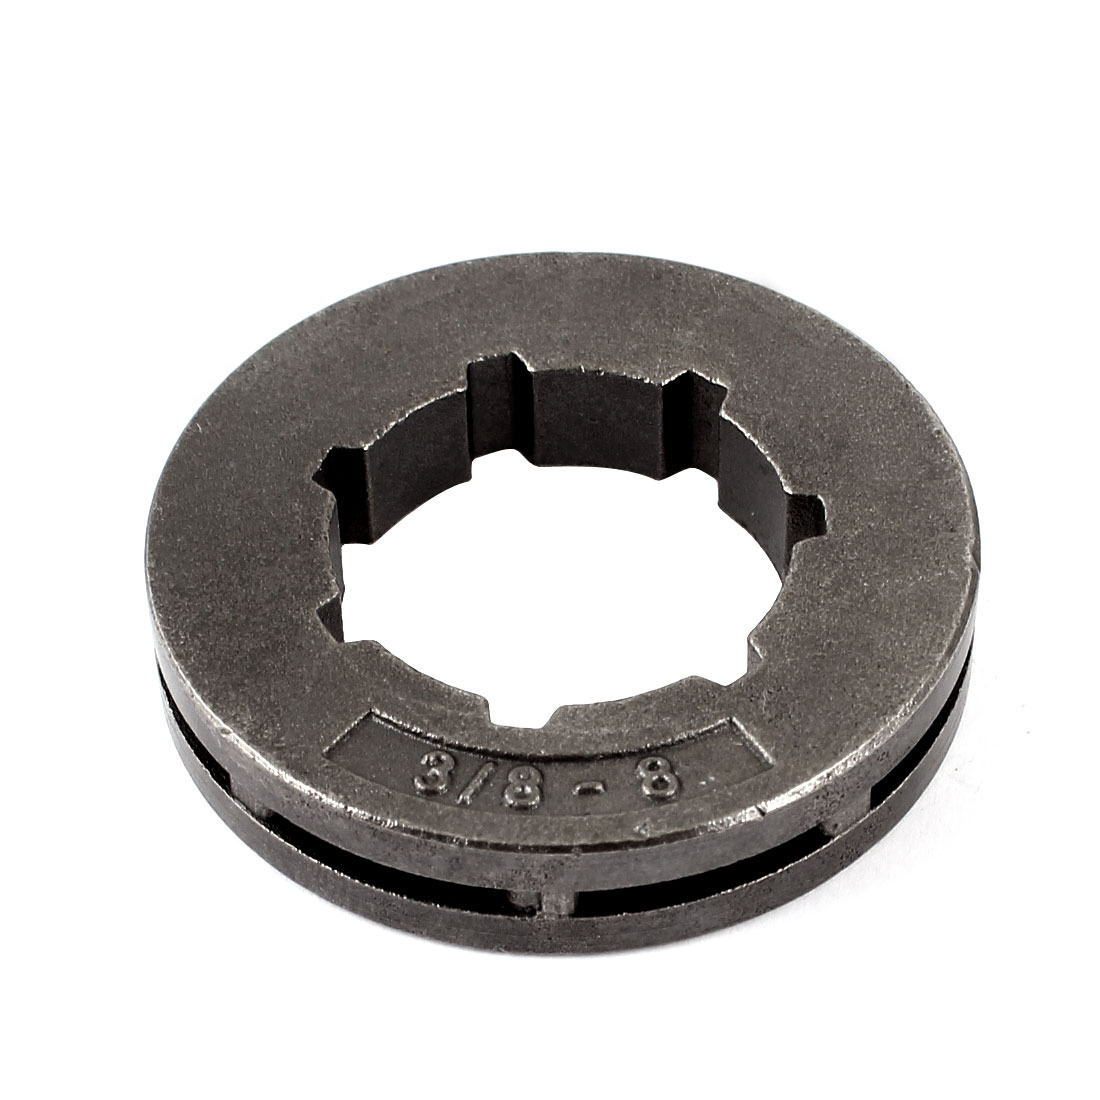 22mm Hole Dia Chainsaw Chain Saw Rim Sprocket 7 Tooth for Stihl 381